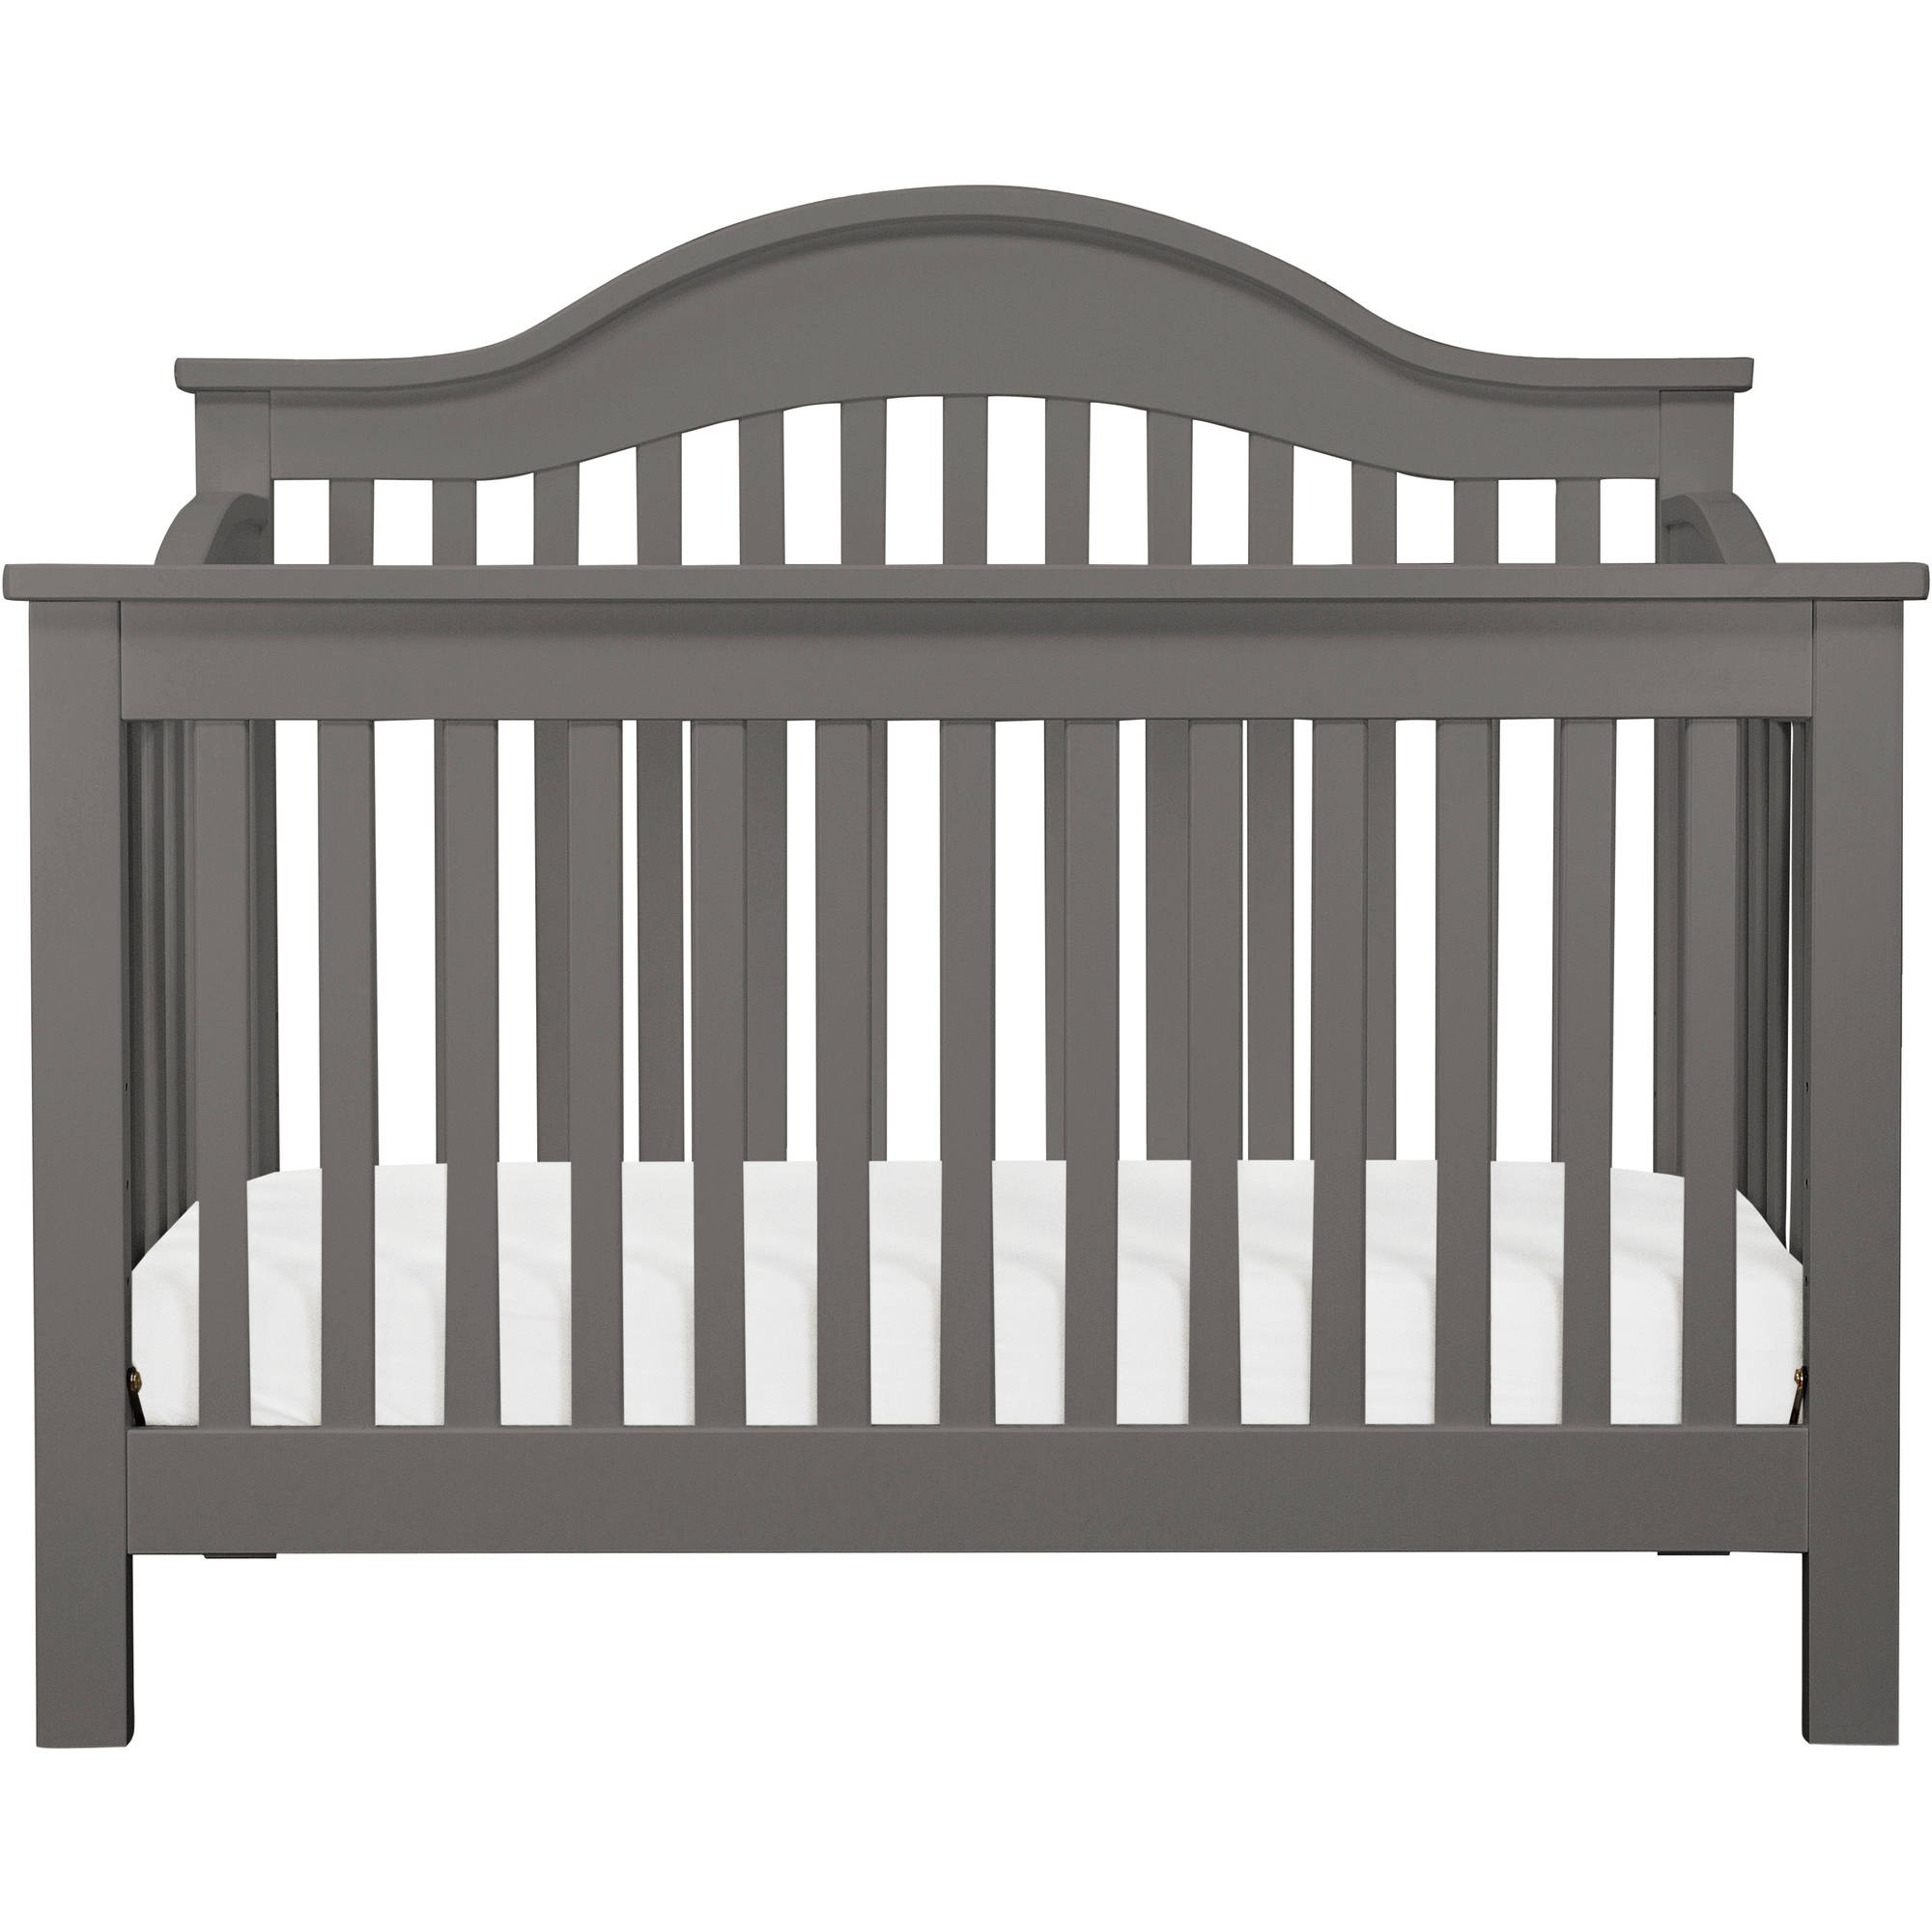 davinci jayden 4in1 convertible crib with toddler bed conversion kit slate gray - Crib Conversion Kit